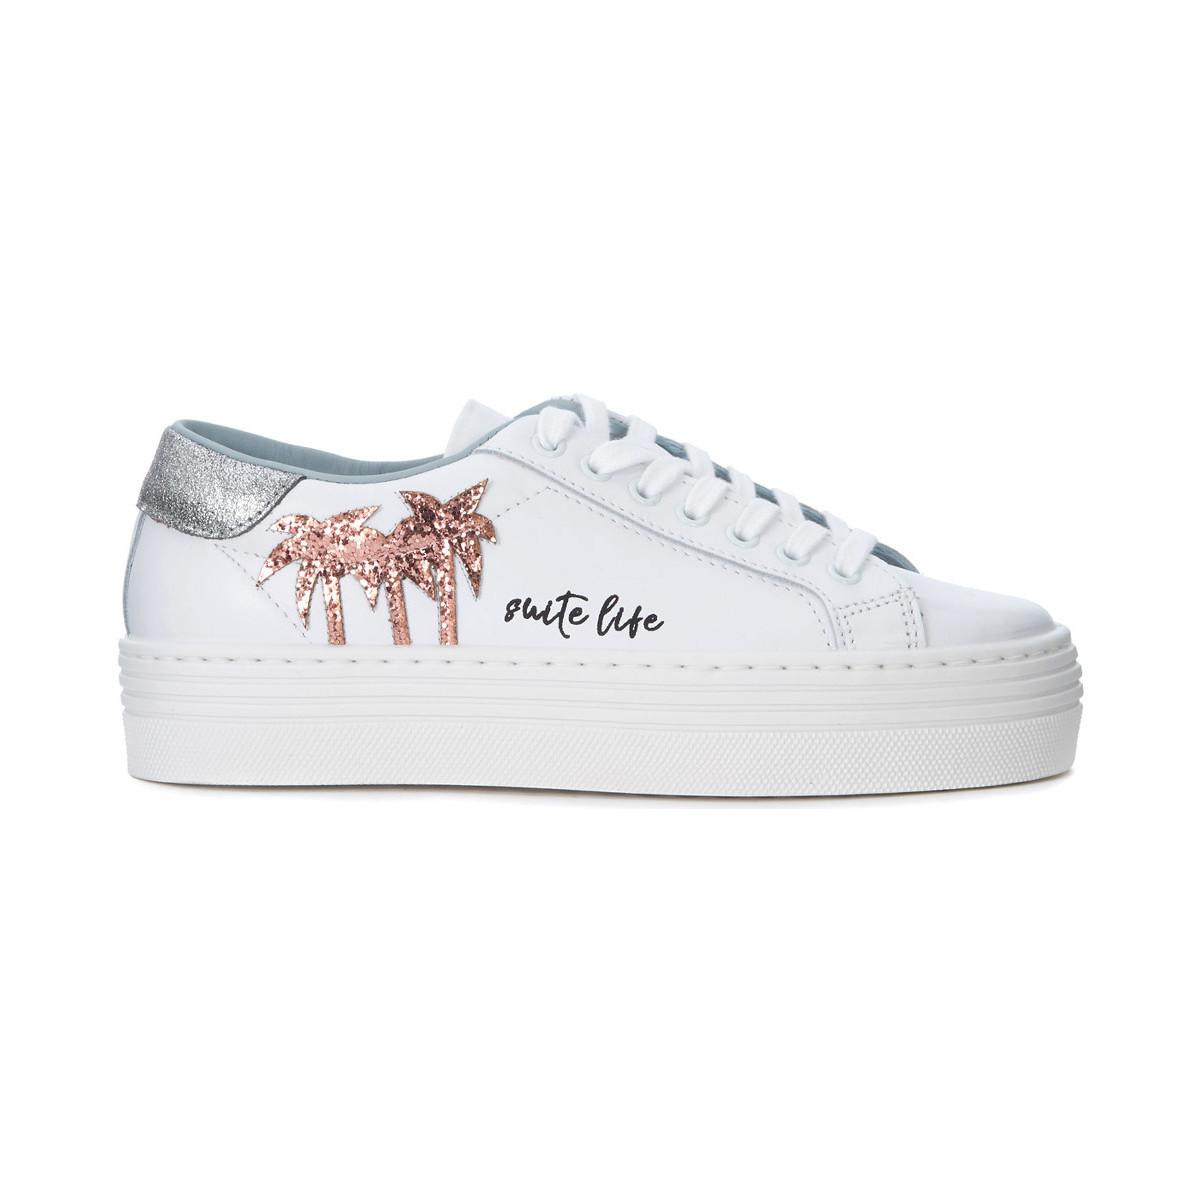 Chiara Ferragni Suite leather and glitter sneaker women's Shoes (Trainers) in Purchase Cheap Online yTEoa